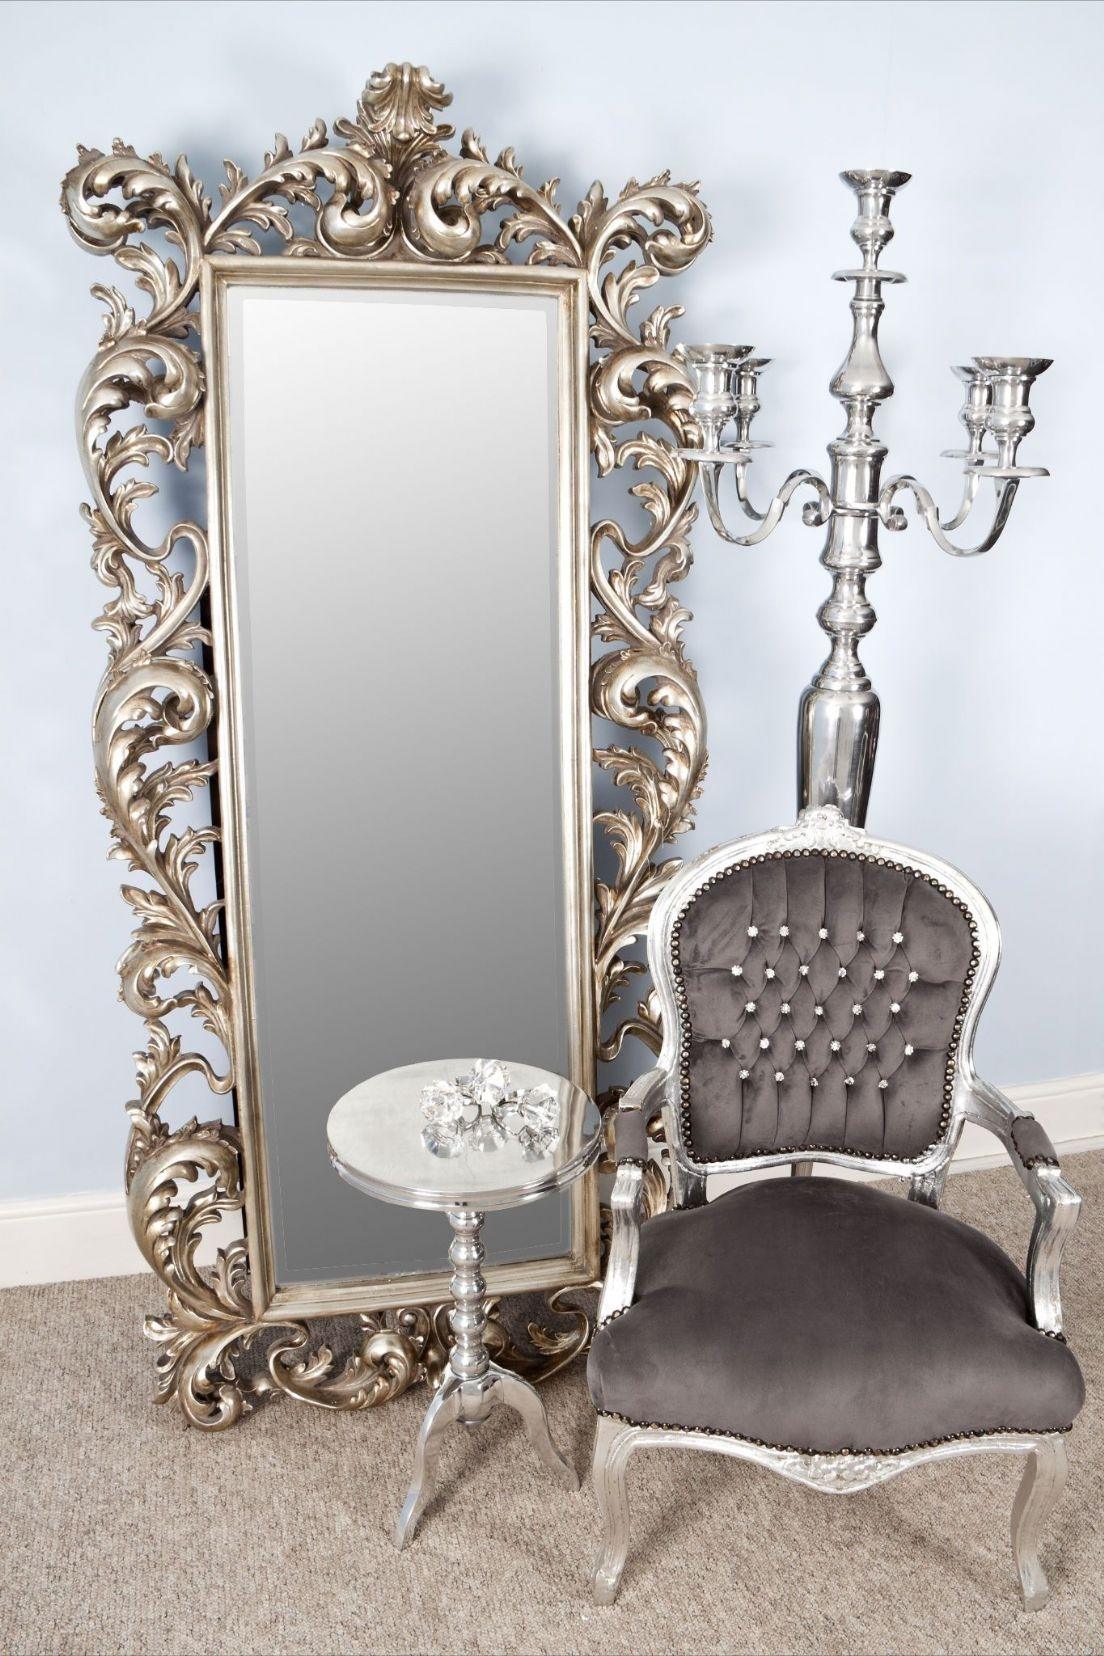 Rococo Mirrors Exclusive Mirrors Inside Large Ornate Mirrors For Sale (Image 13 of 15)